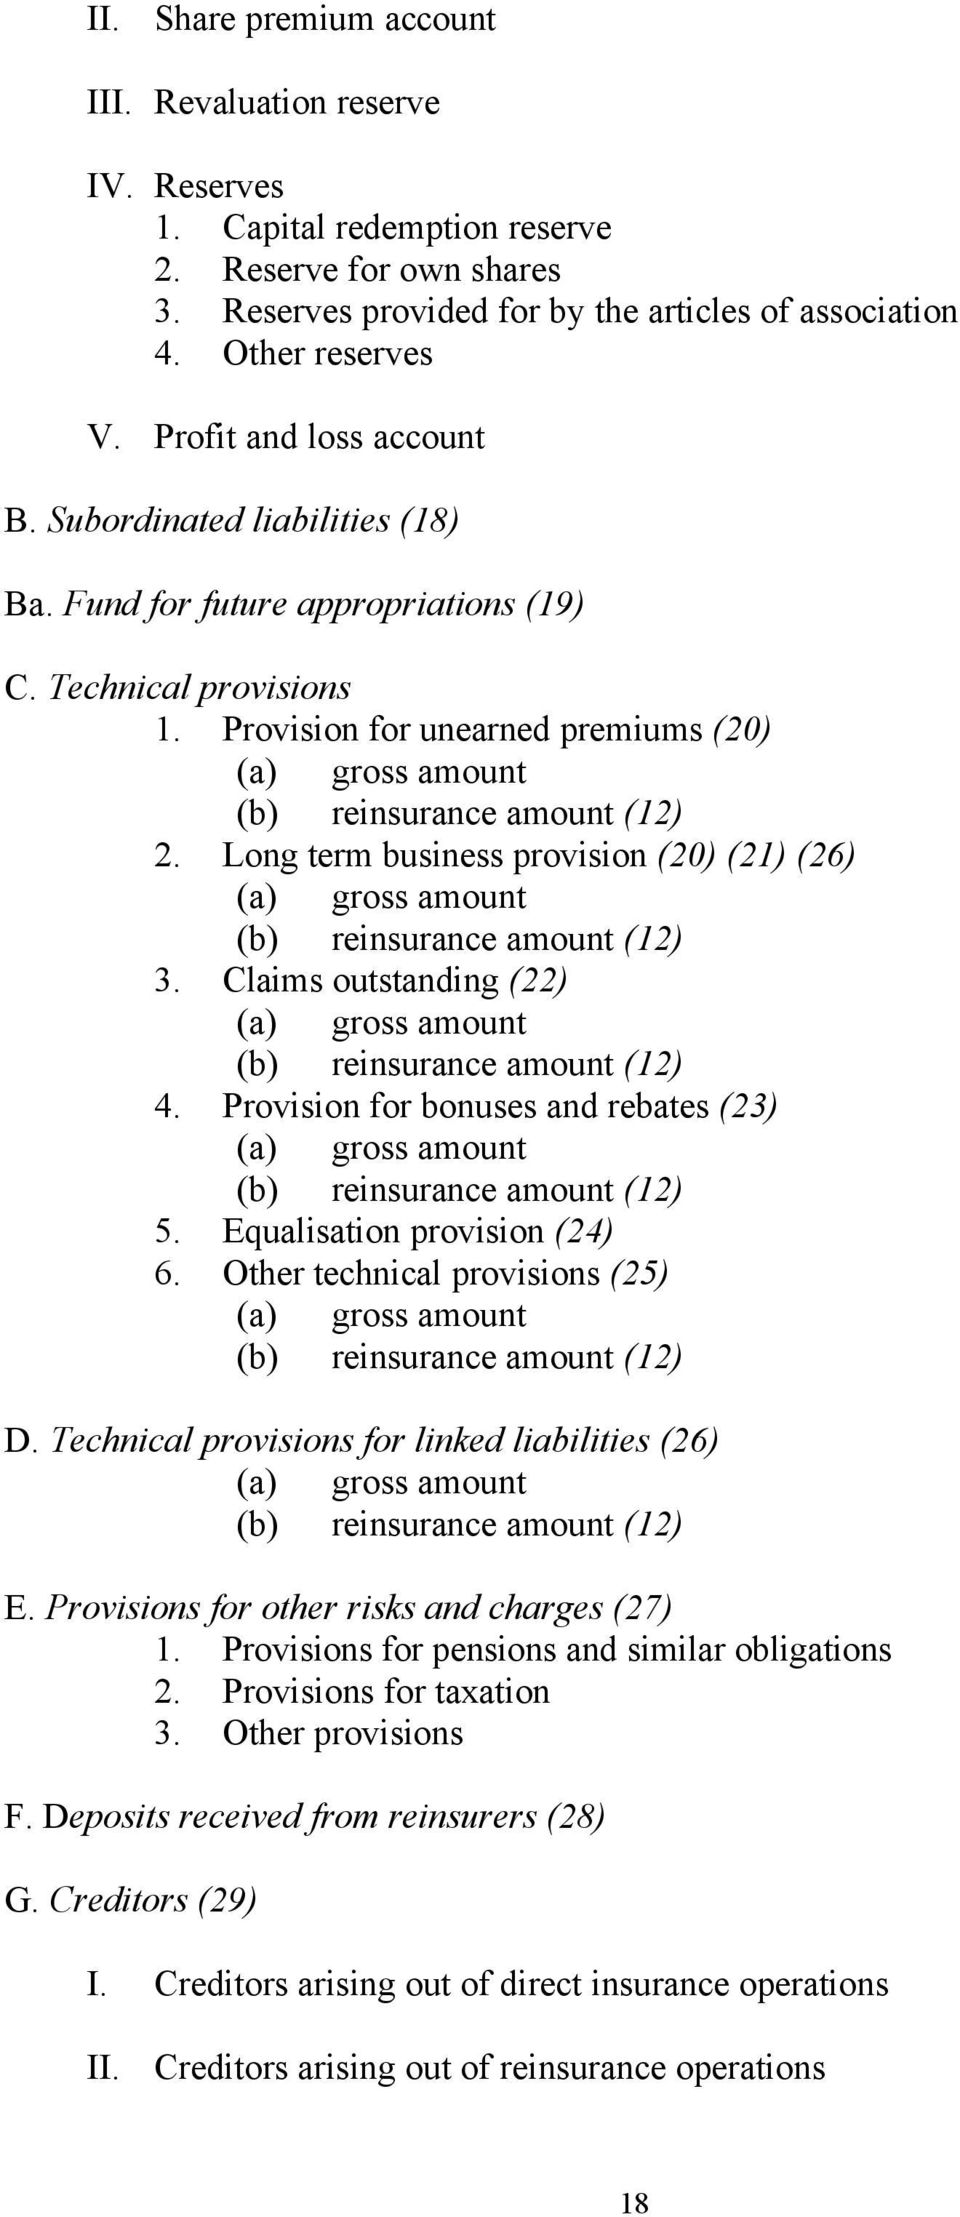 Provision for unearned premiums (20) (a) gross amount (b) reinsurance amount (12) 2. Long term business provision (20) (21) (26) (a) gross amount (b) reinsurance amount (12) 3.